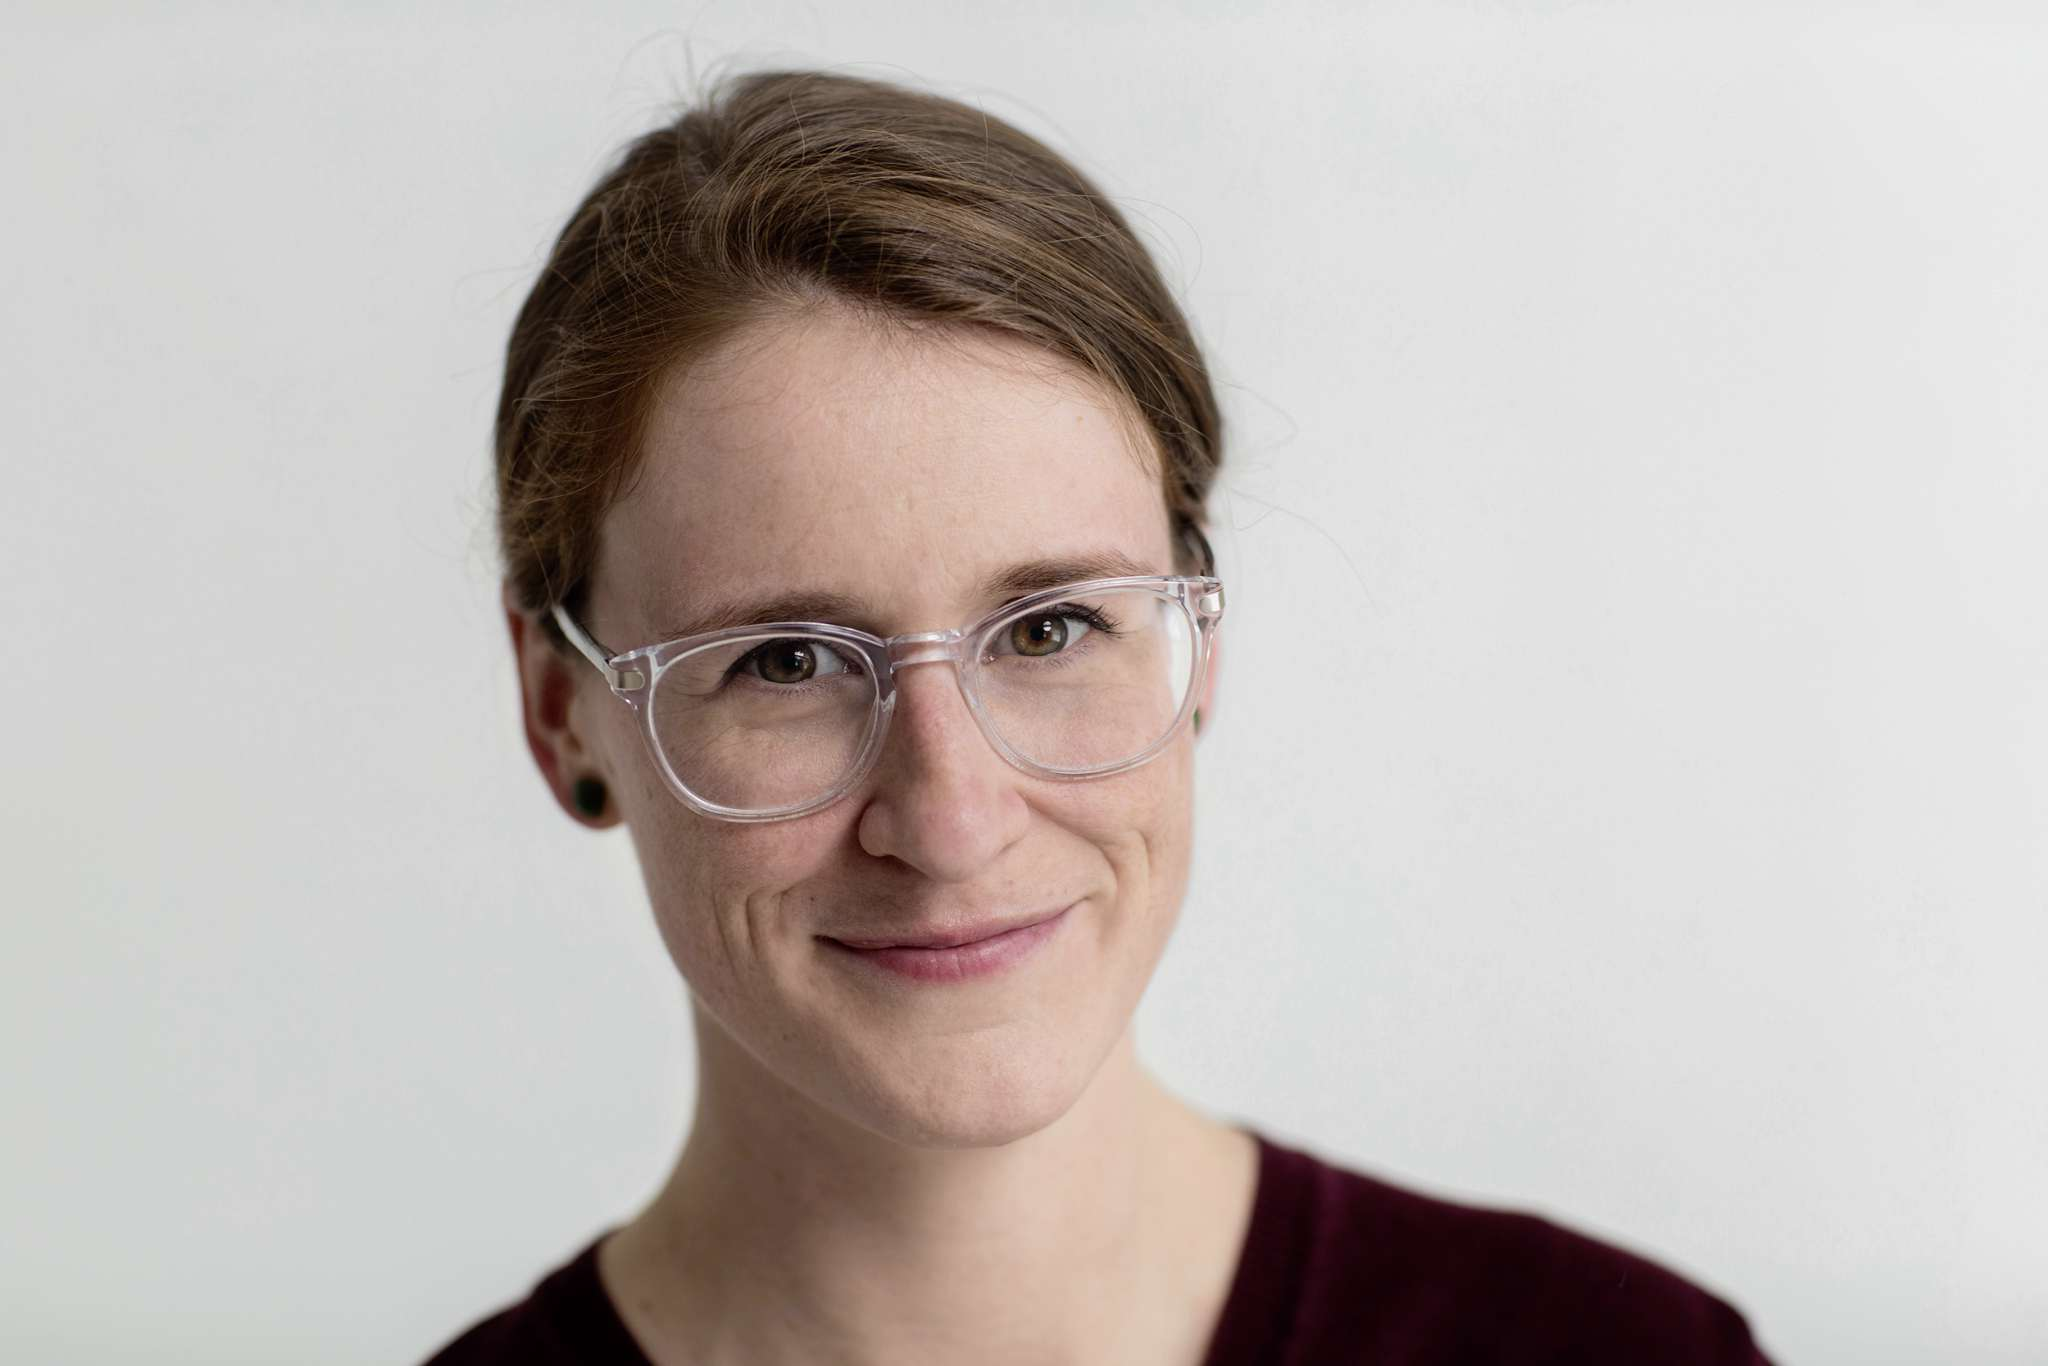 Françoise Therrien Vrignon is running for the Green Party of Manitoba in the byelection in the provincial riding of St. Boniface.